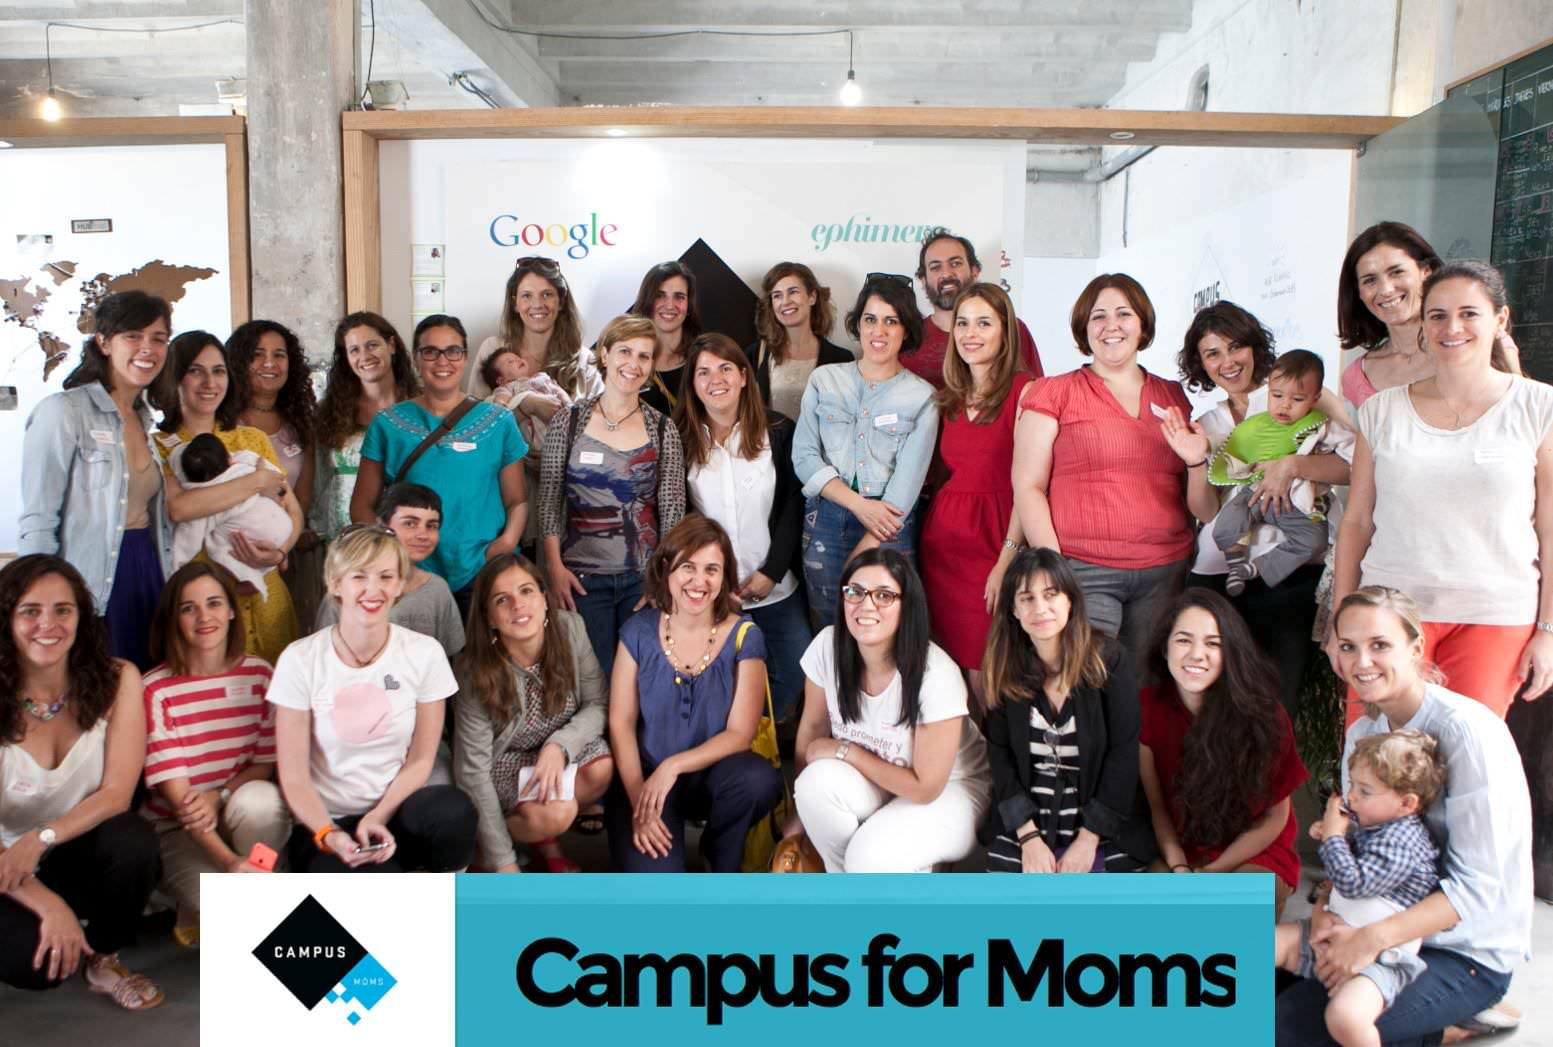 Campus-for-moms